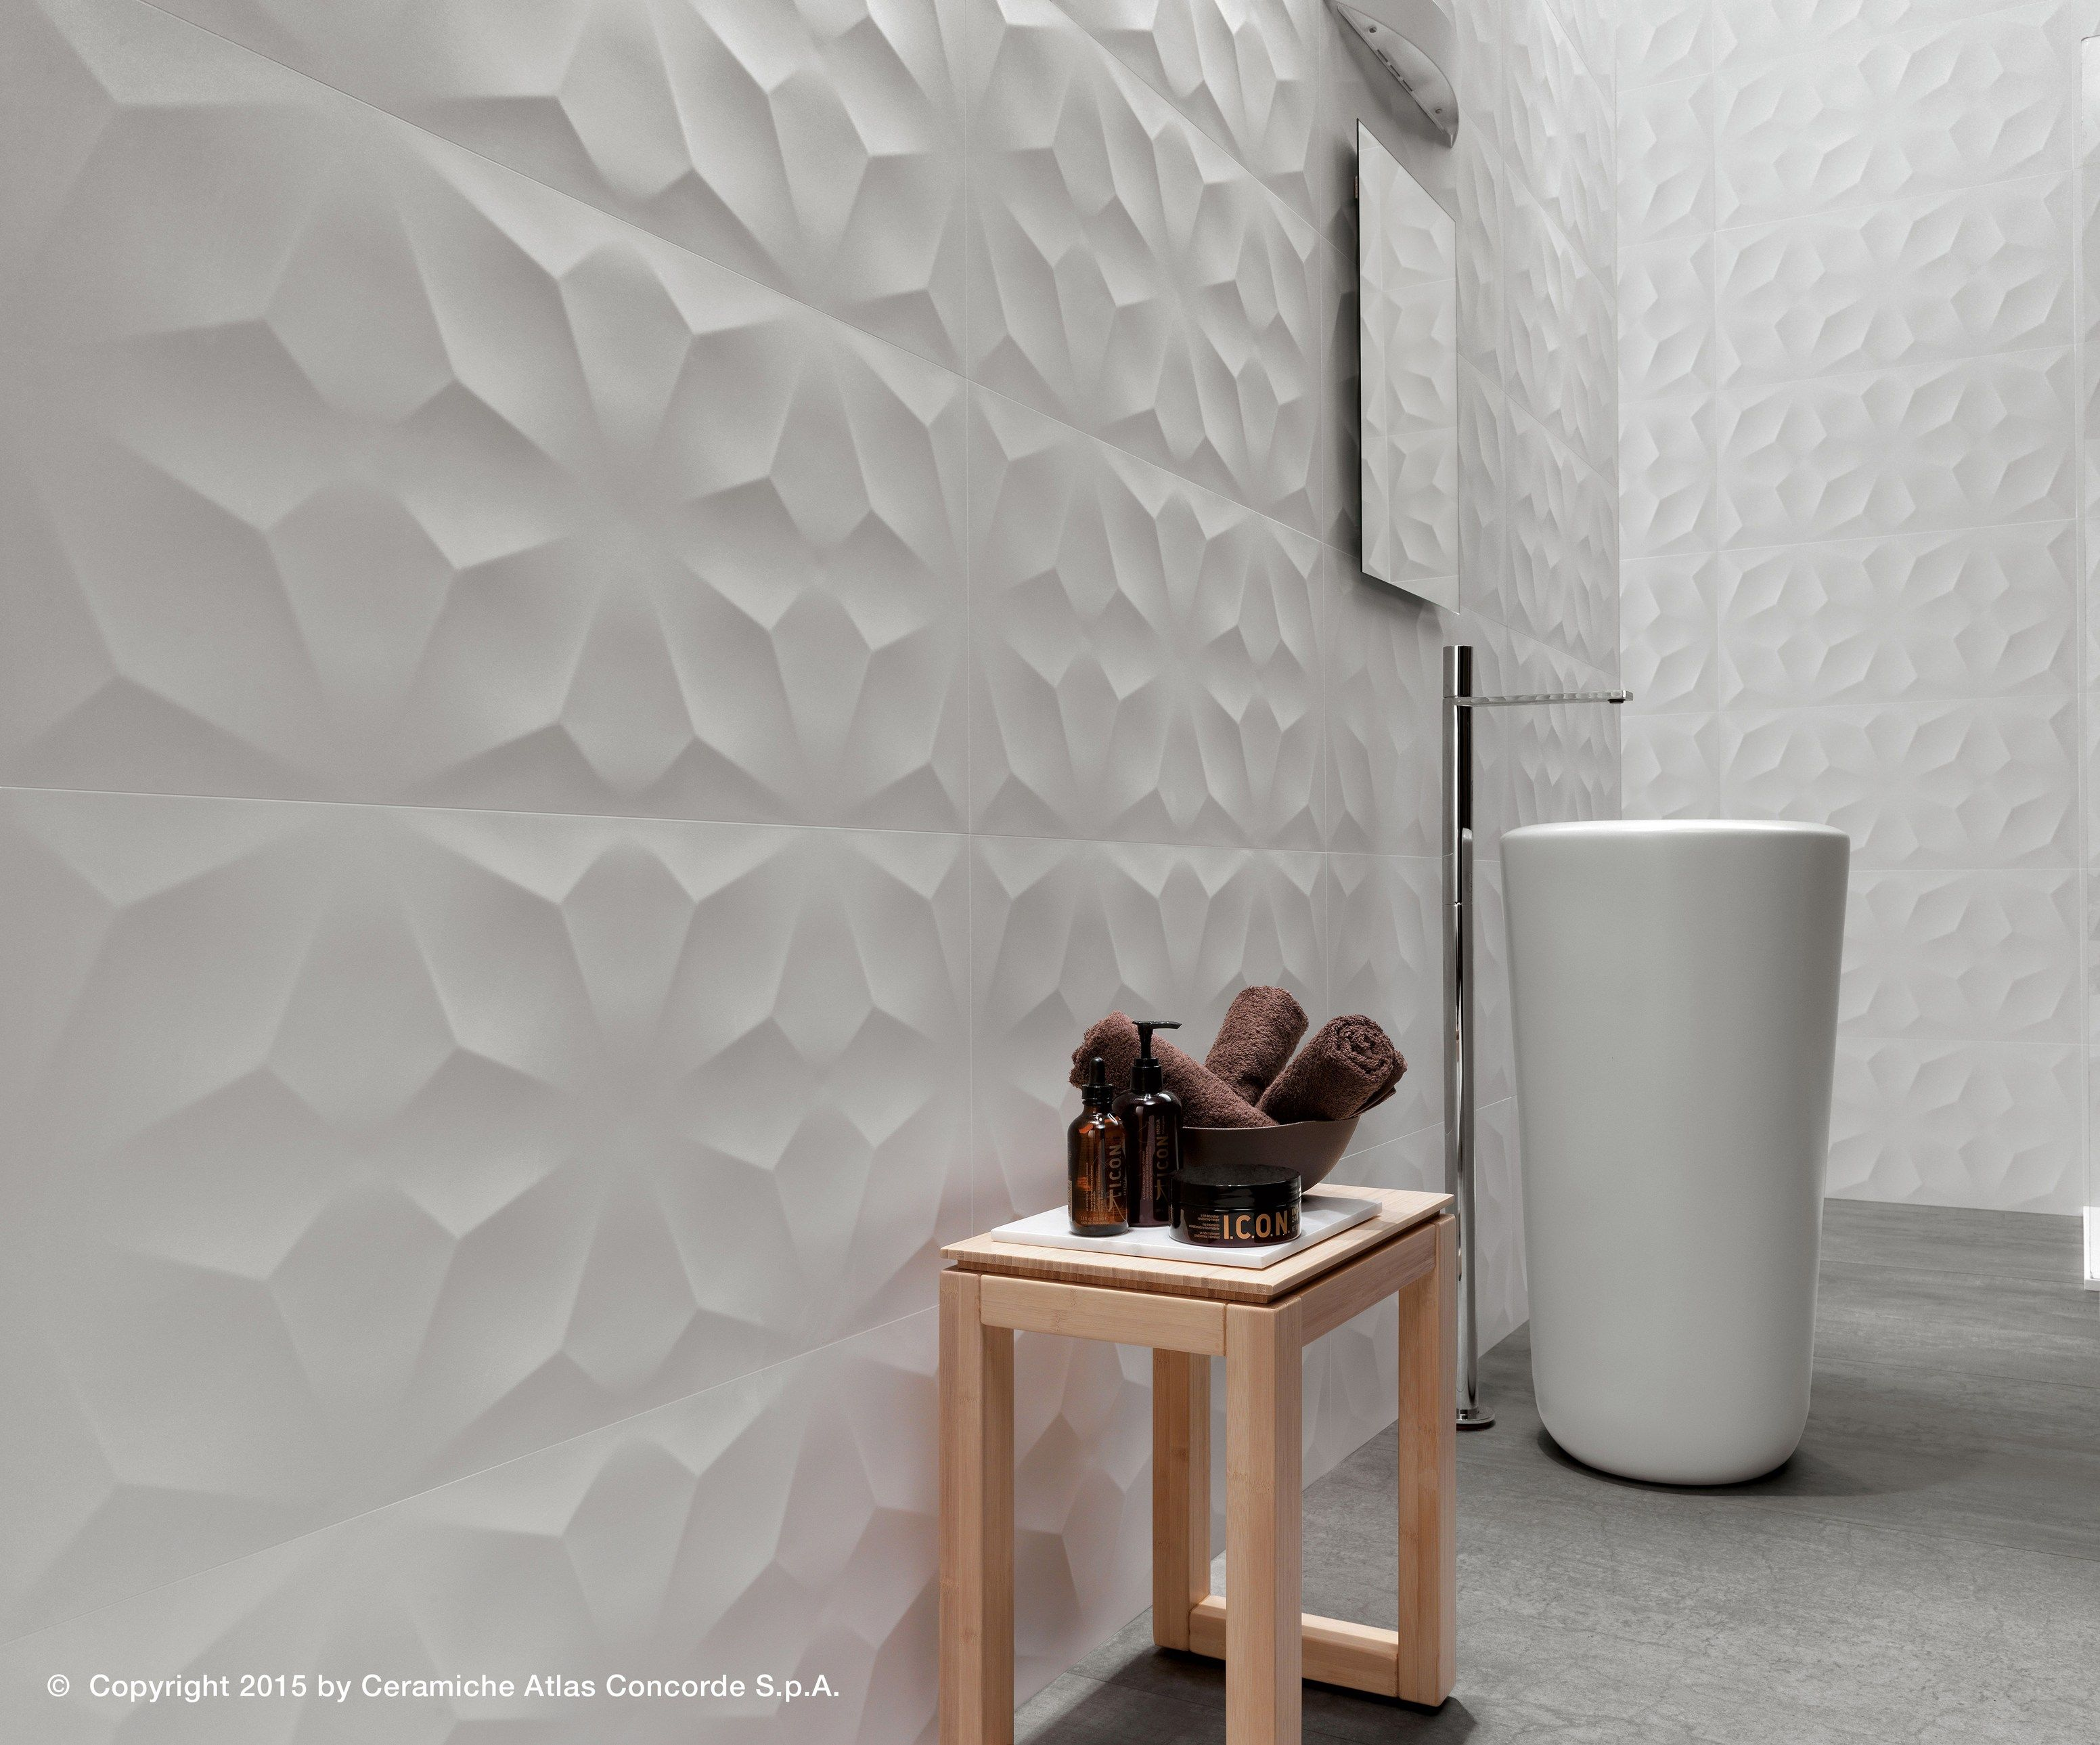 Decorative Tiles Melbourne Whitepaste 3D Wall Cladding 3D Wall Design Diamondatlas